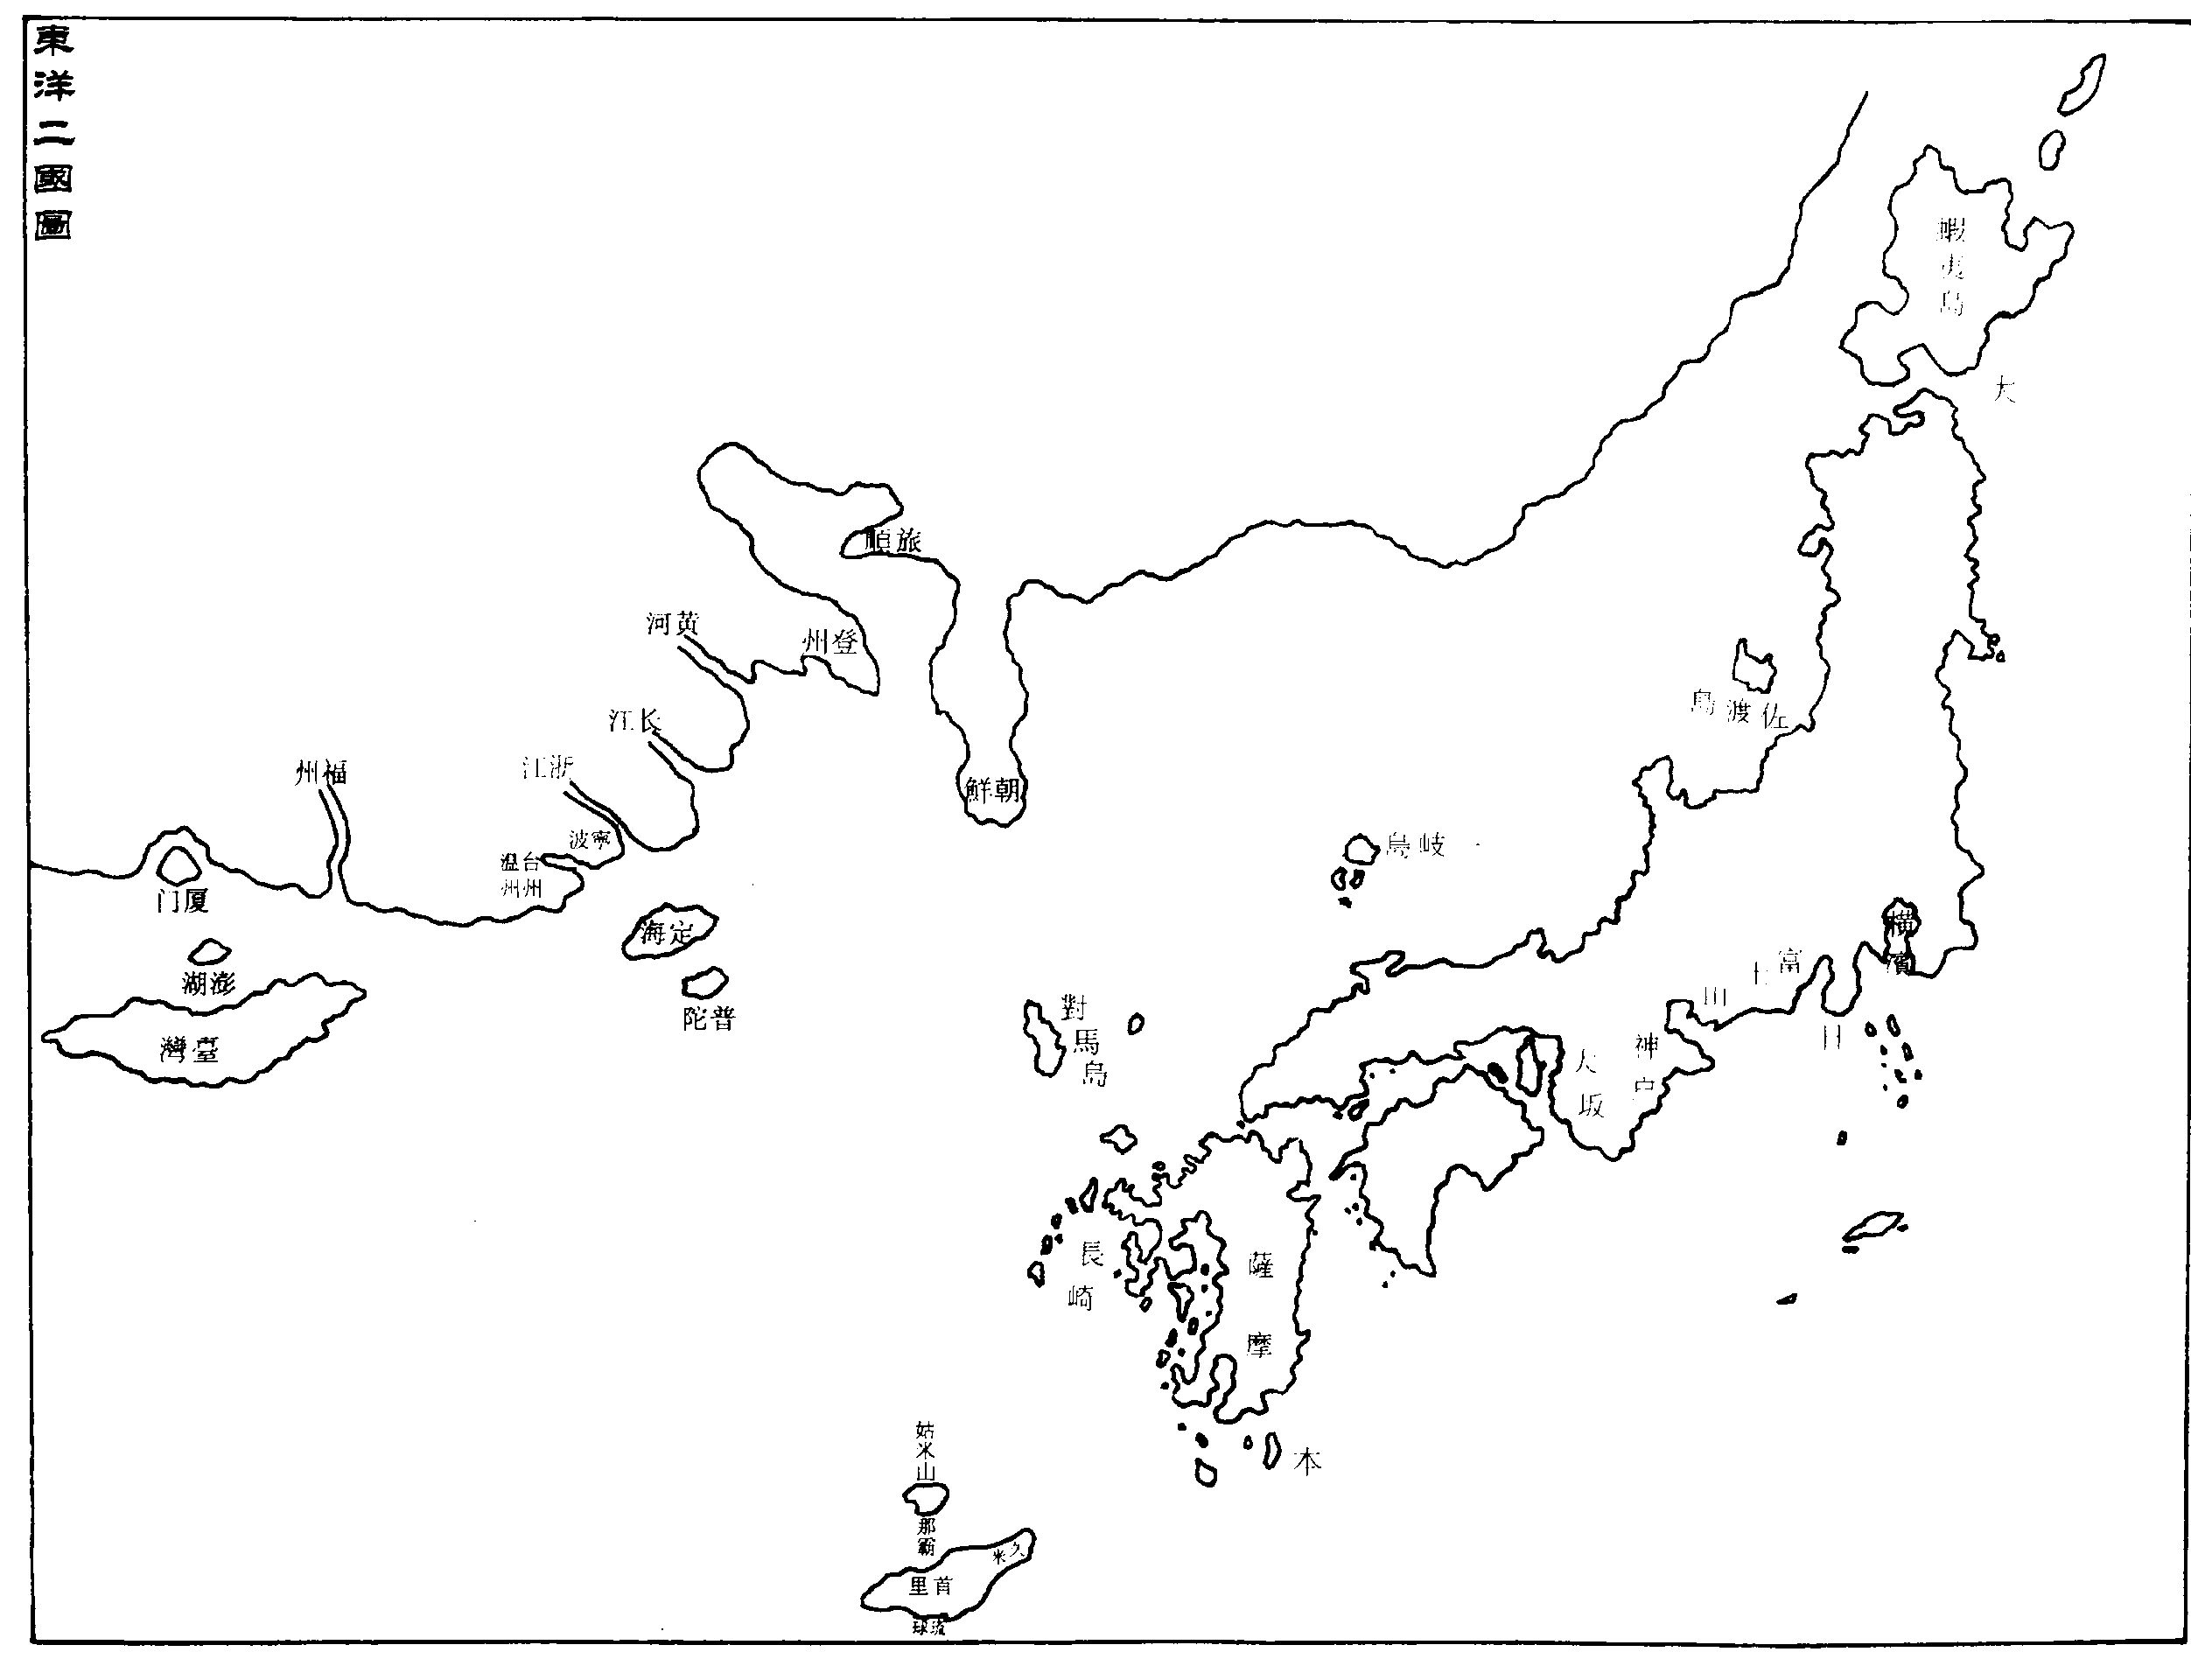 File:The Map of East Asia-zh-classical.png - Wikimedia Commons